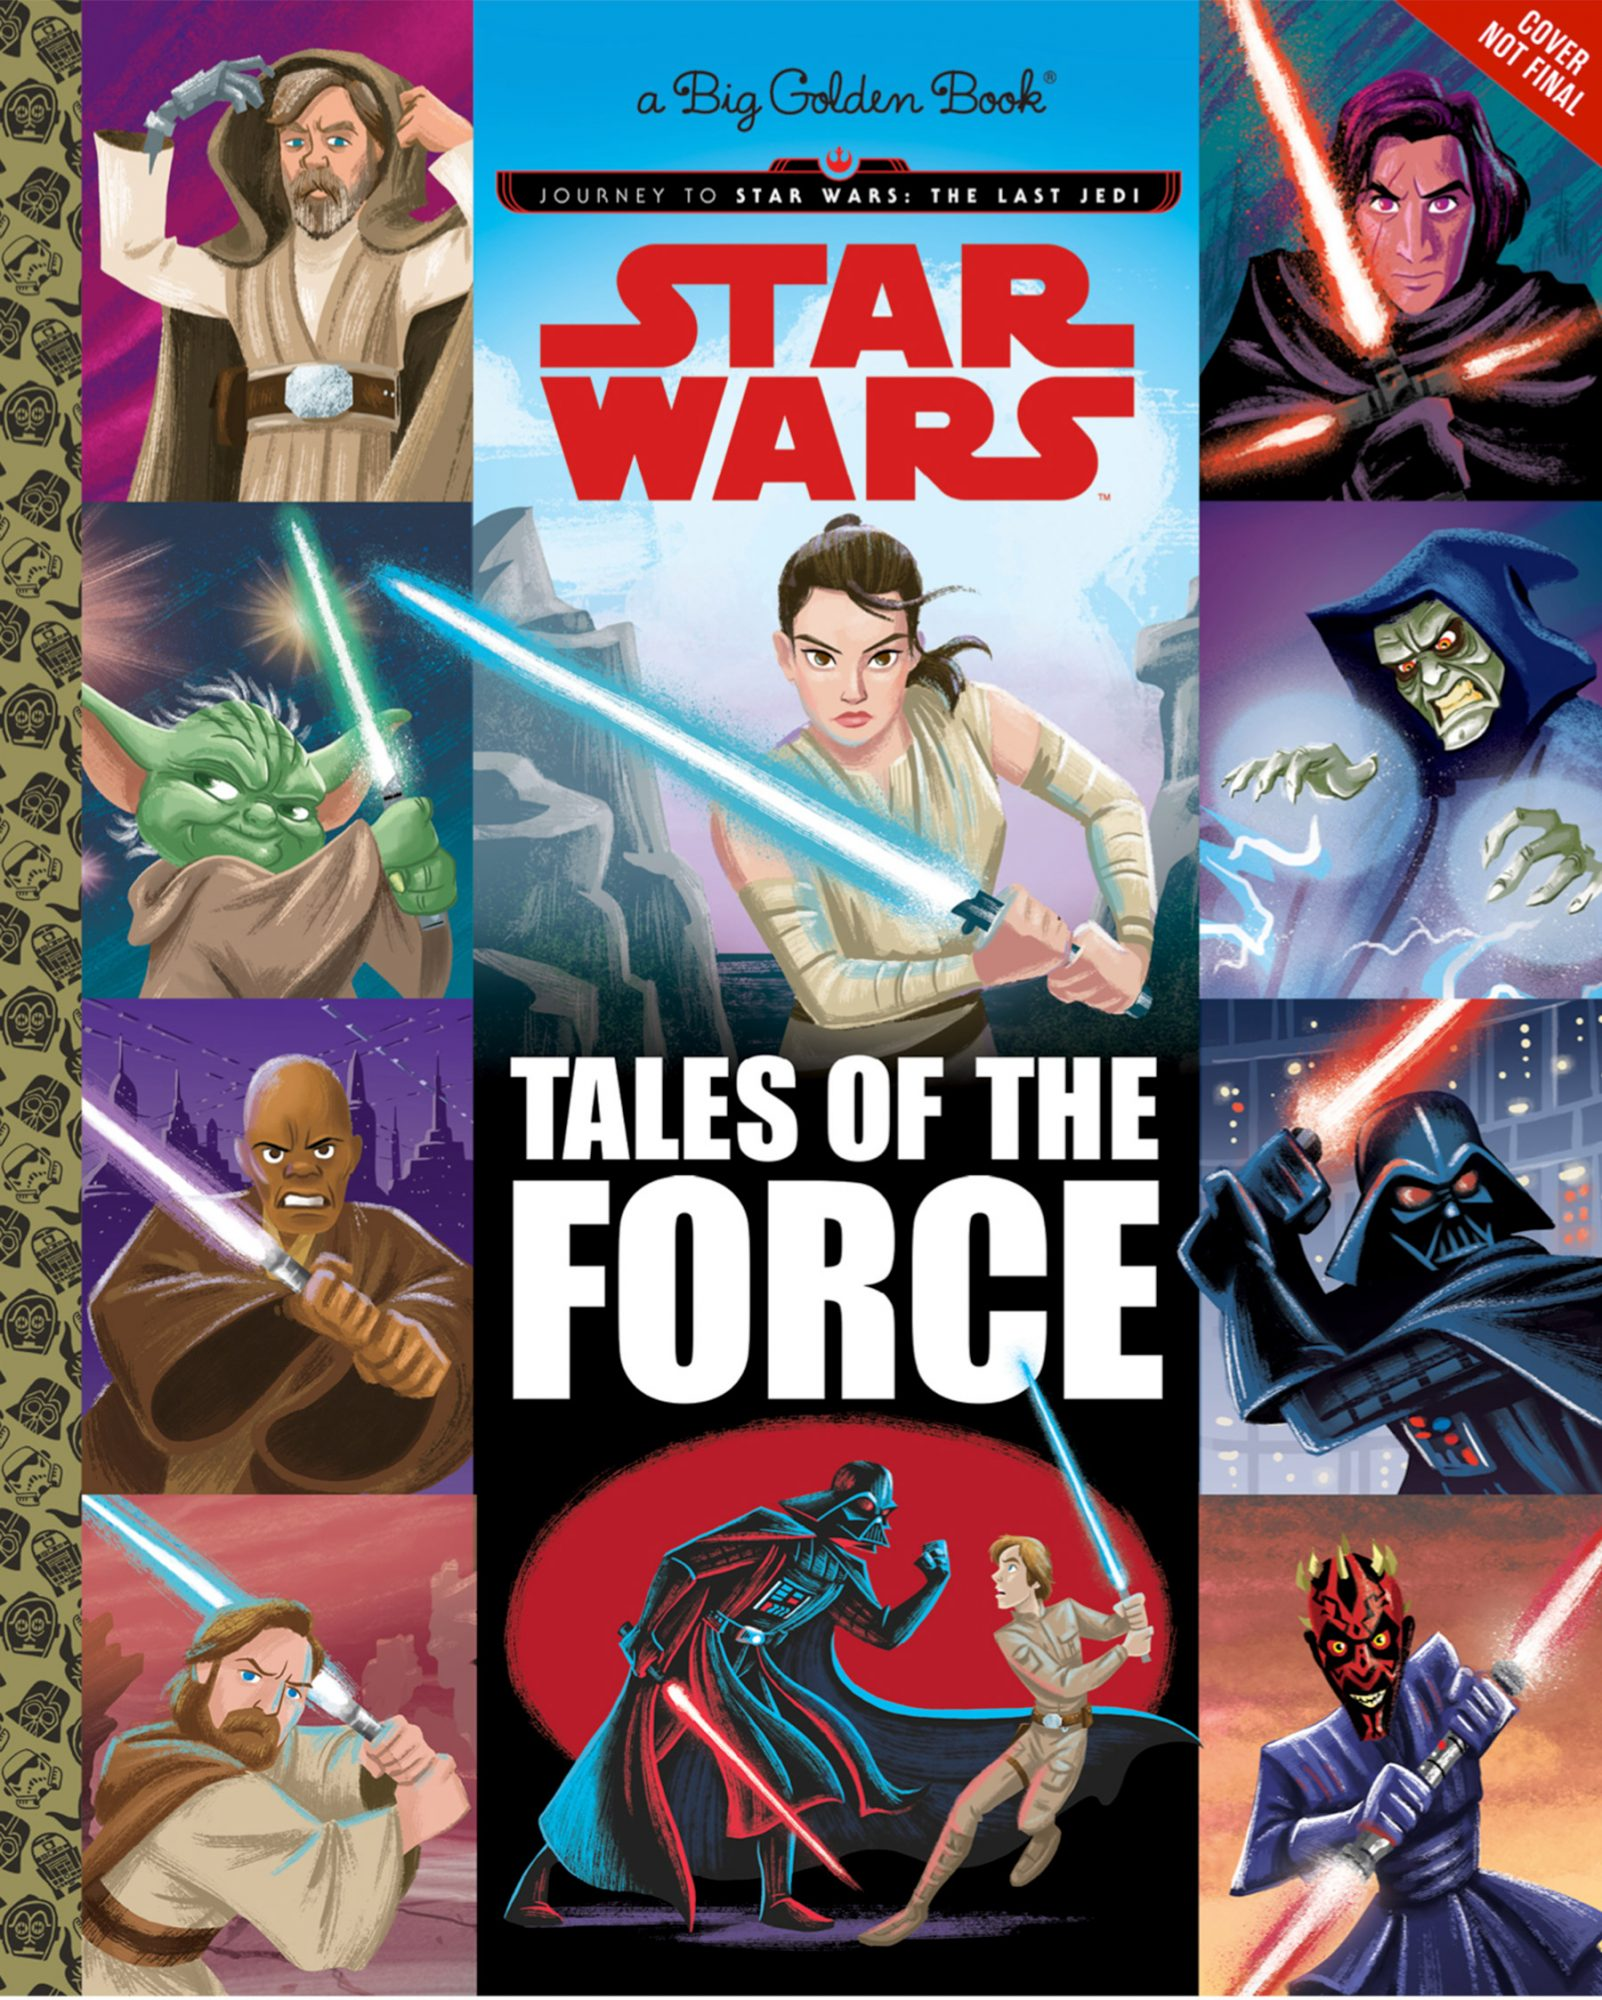 Tales of the Force – a Big Golden Book